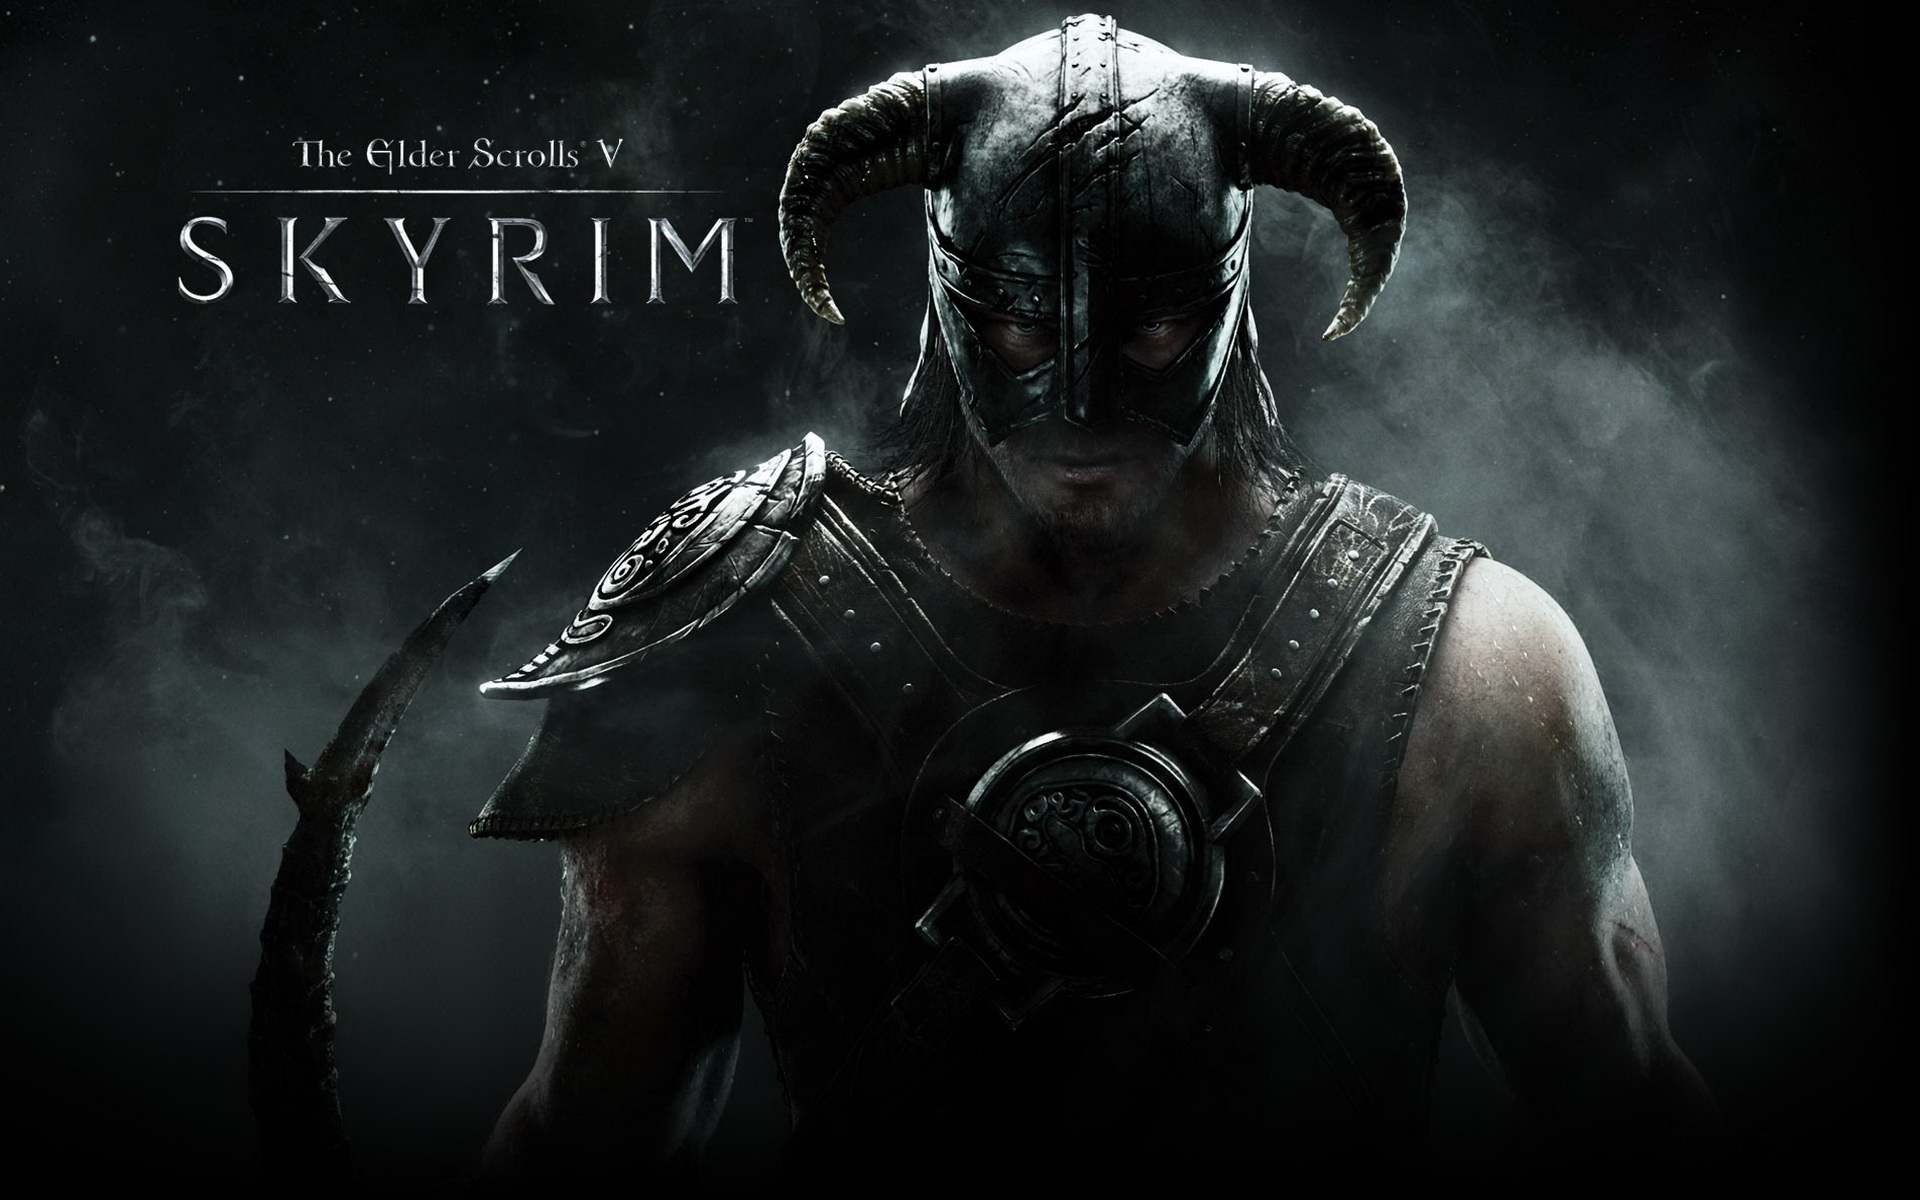 Stiahni si Hry na Windows The Elder Scrolls V: Skyrim (CZ)